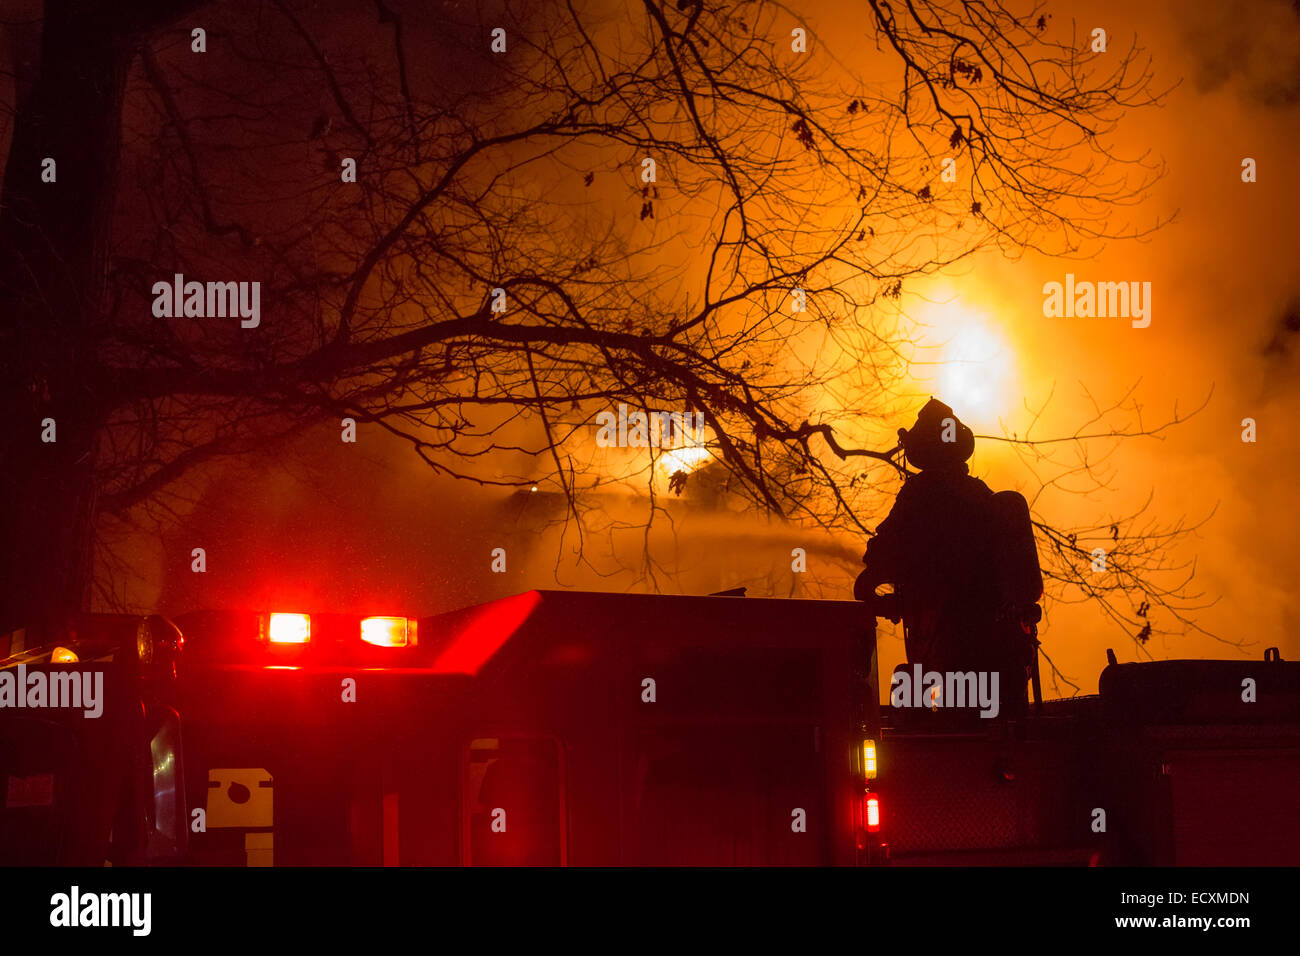 Detroit, Michigan USA - Firefighters battle a fire which destroyed a vacant home in Detroit's Morningside neighborhood. - Stock Image